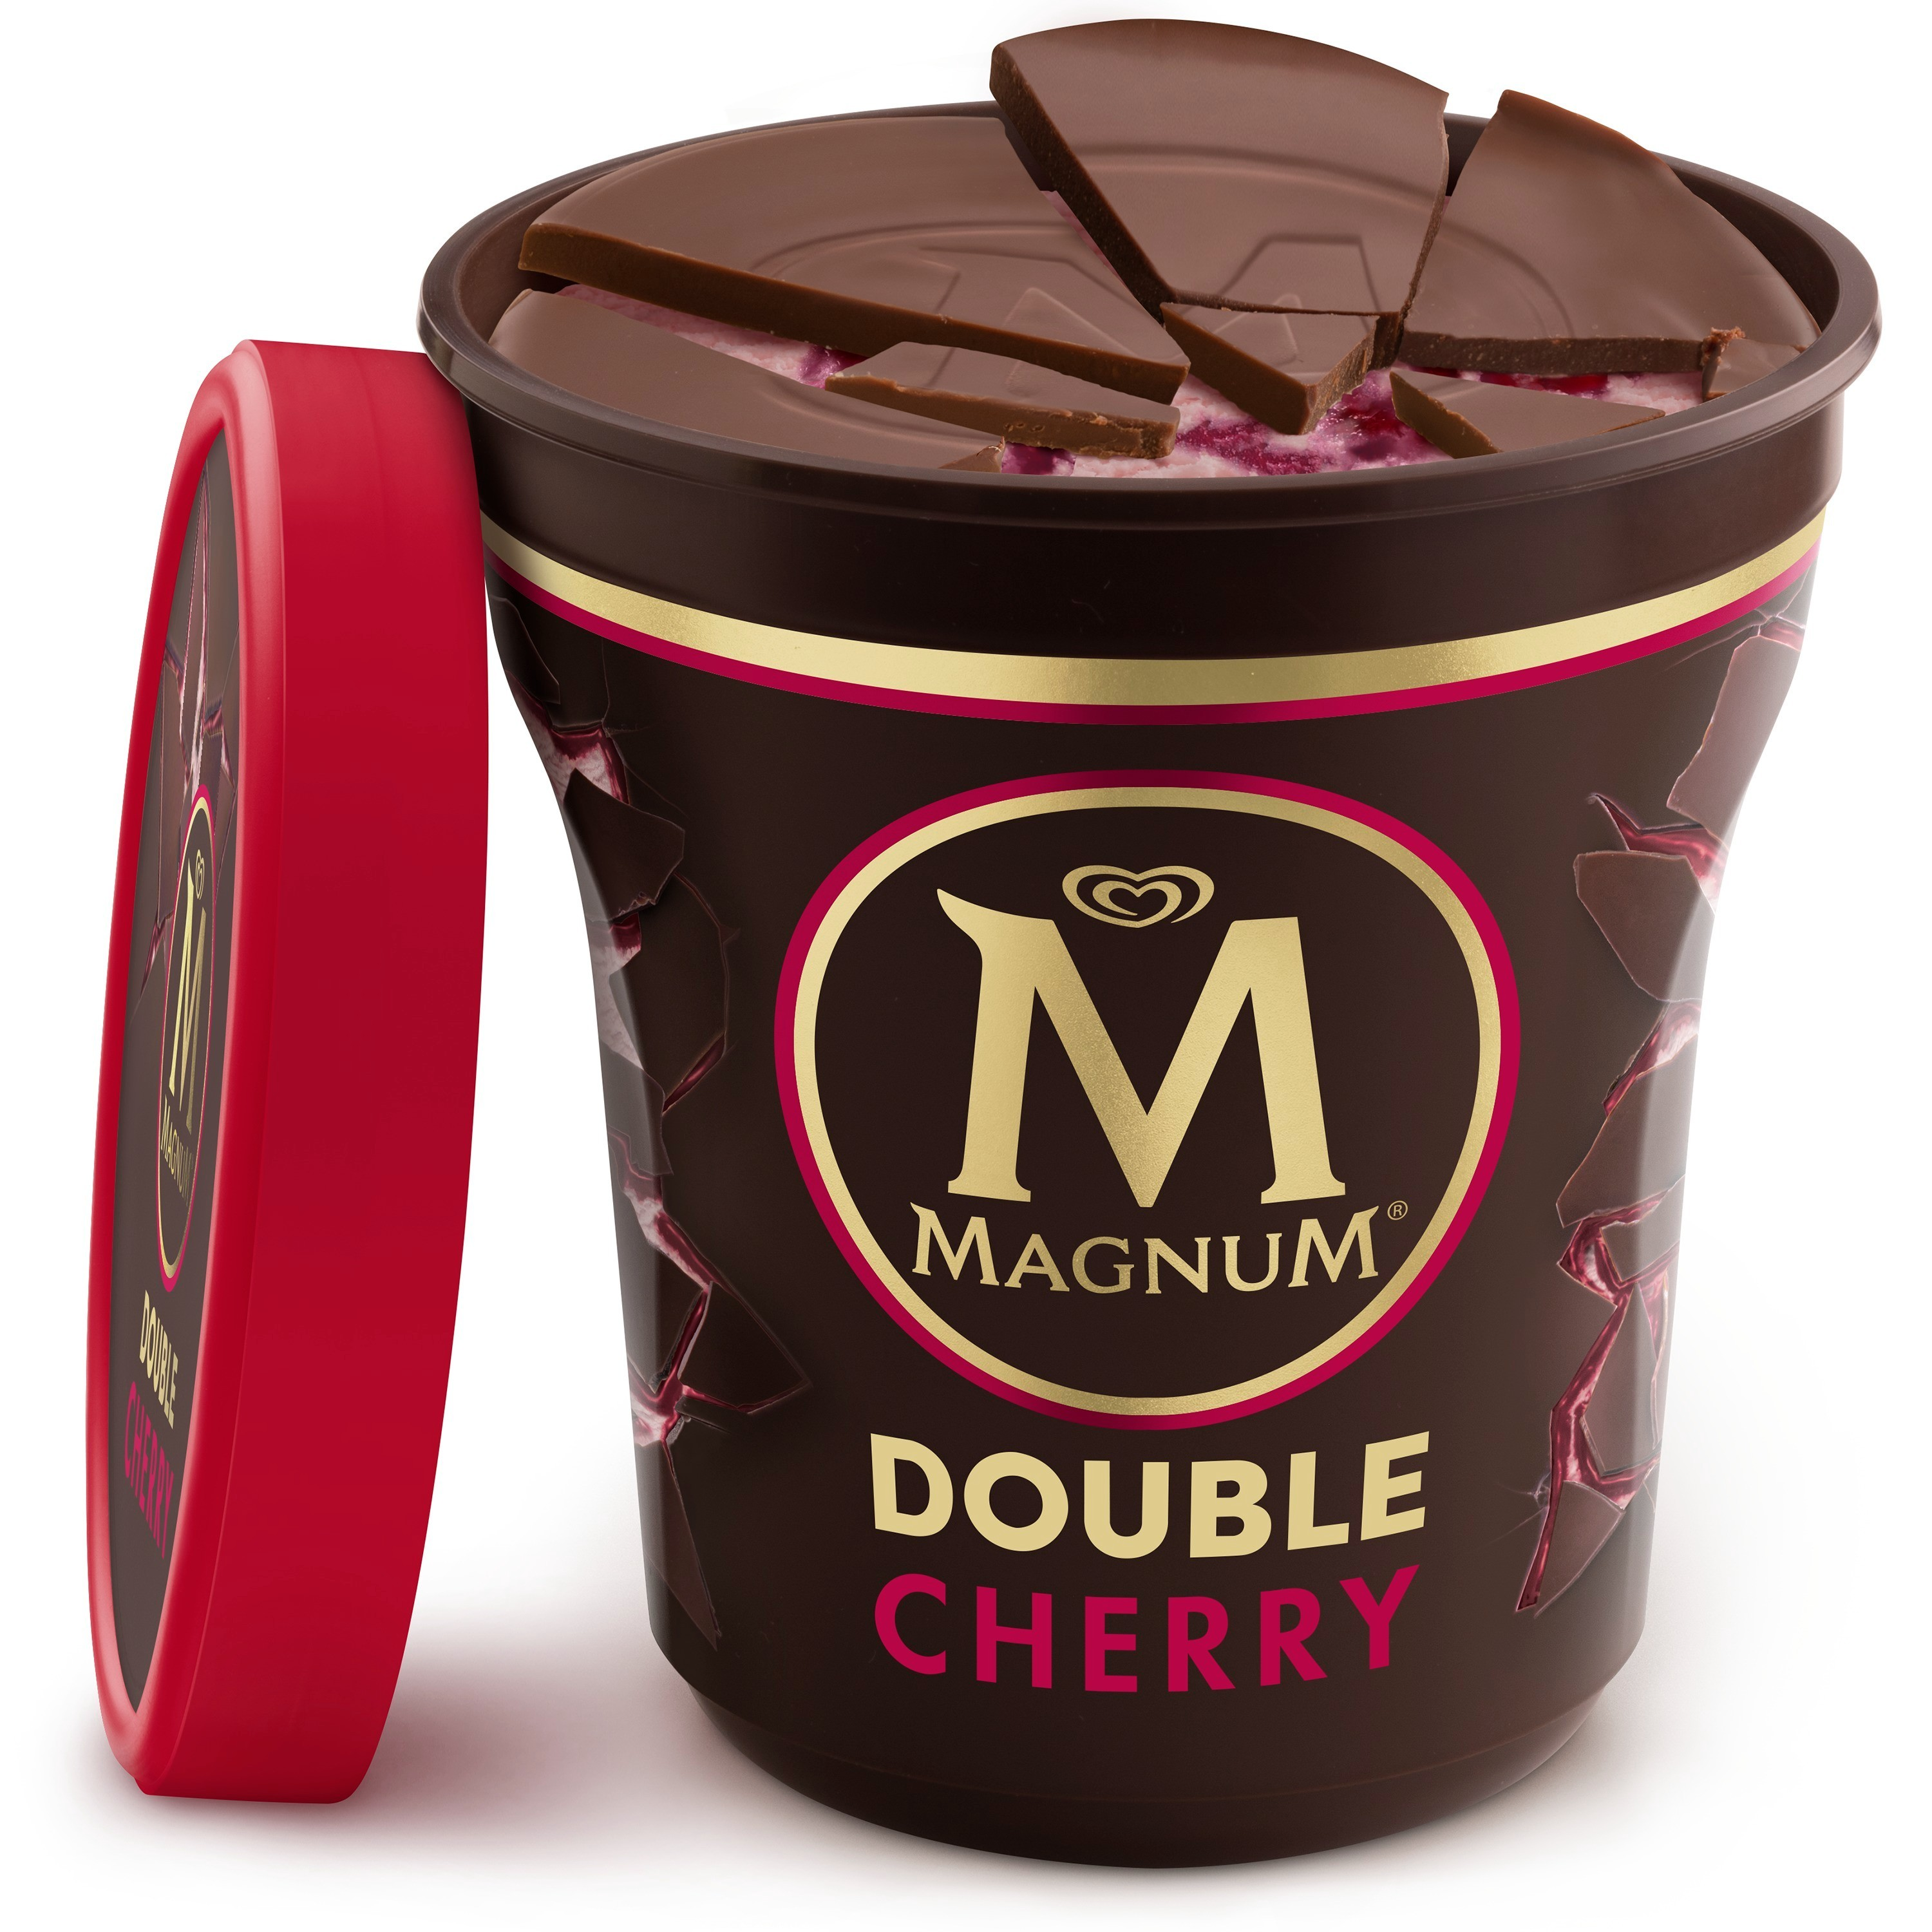 Ice Cream by Magnum & Popsicle, 38,/4,363 Cases, Ext. Retail $125,774, Covington, TN